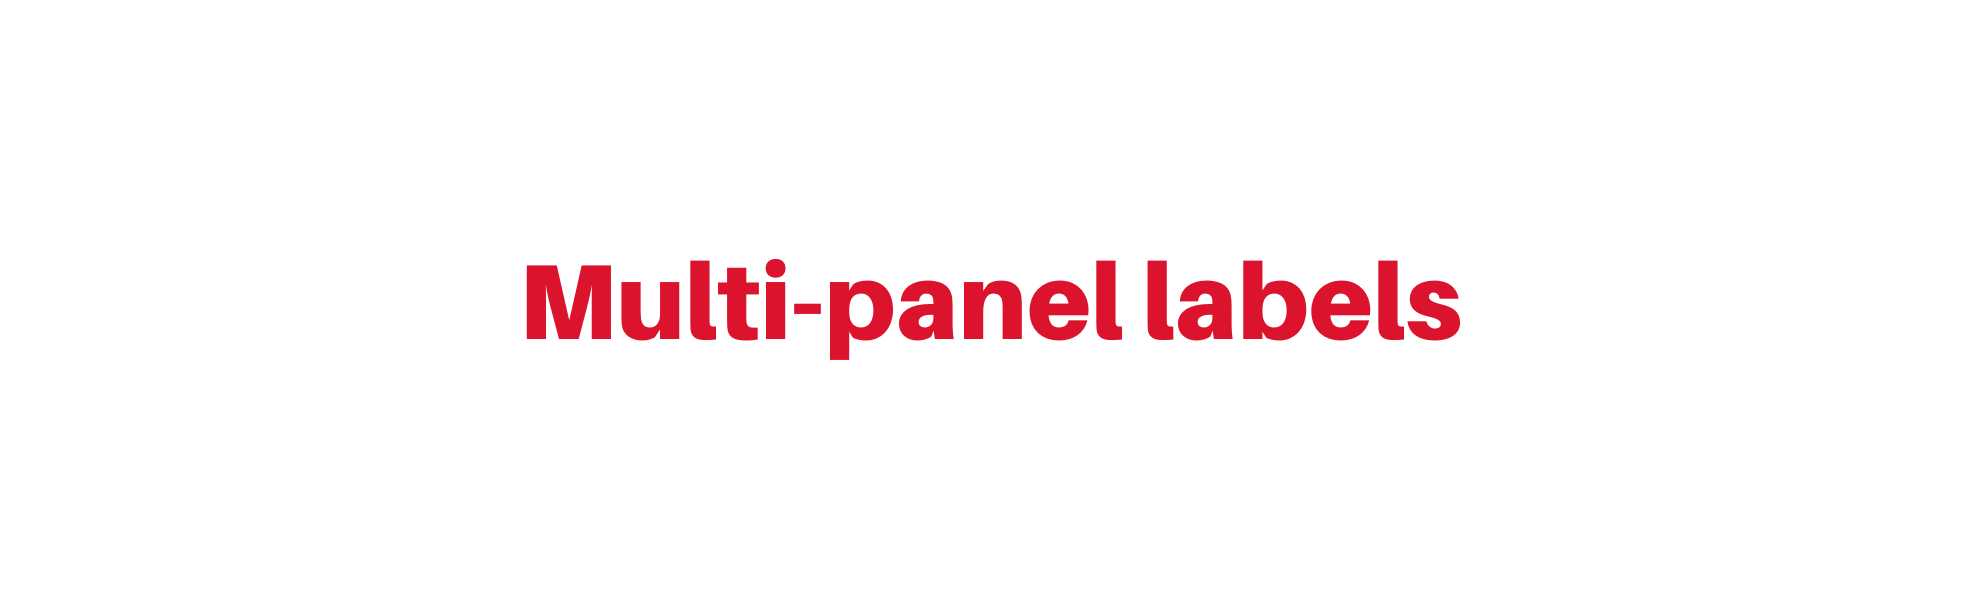 banner_multi-panel_labels